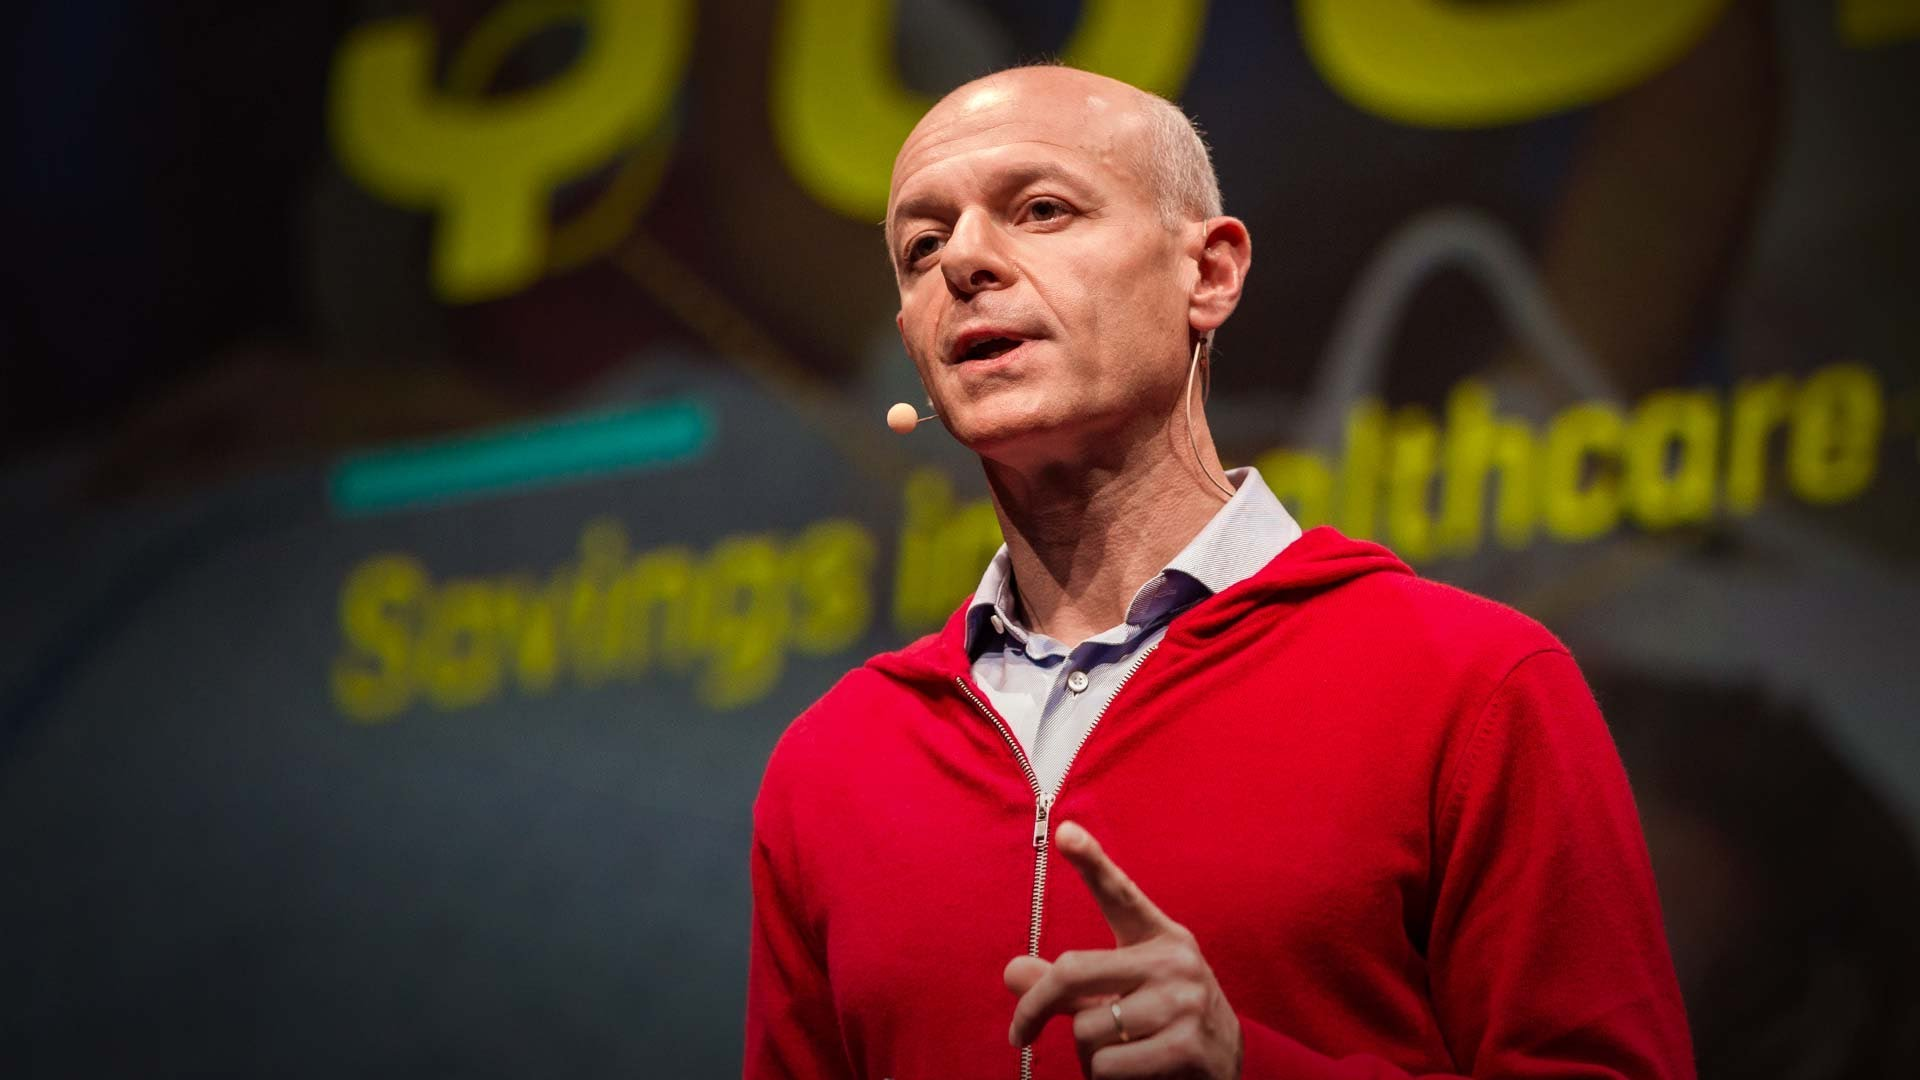 「Marco Annunziata:歡迎來到工業網路時代」- Welcome to the Age of the Industrial Internet